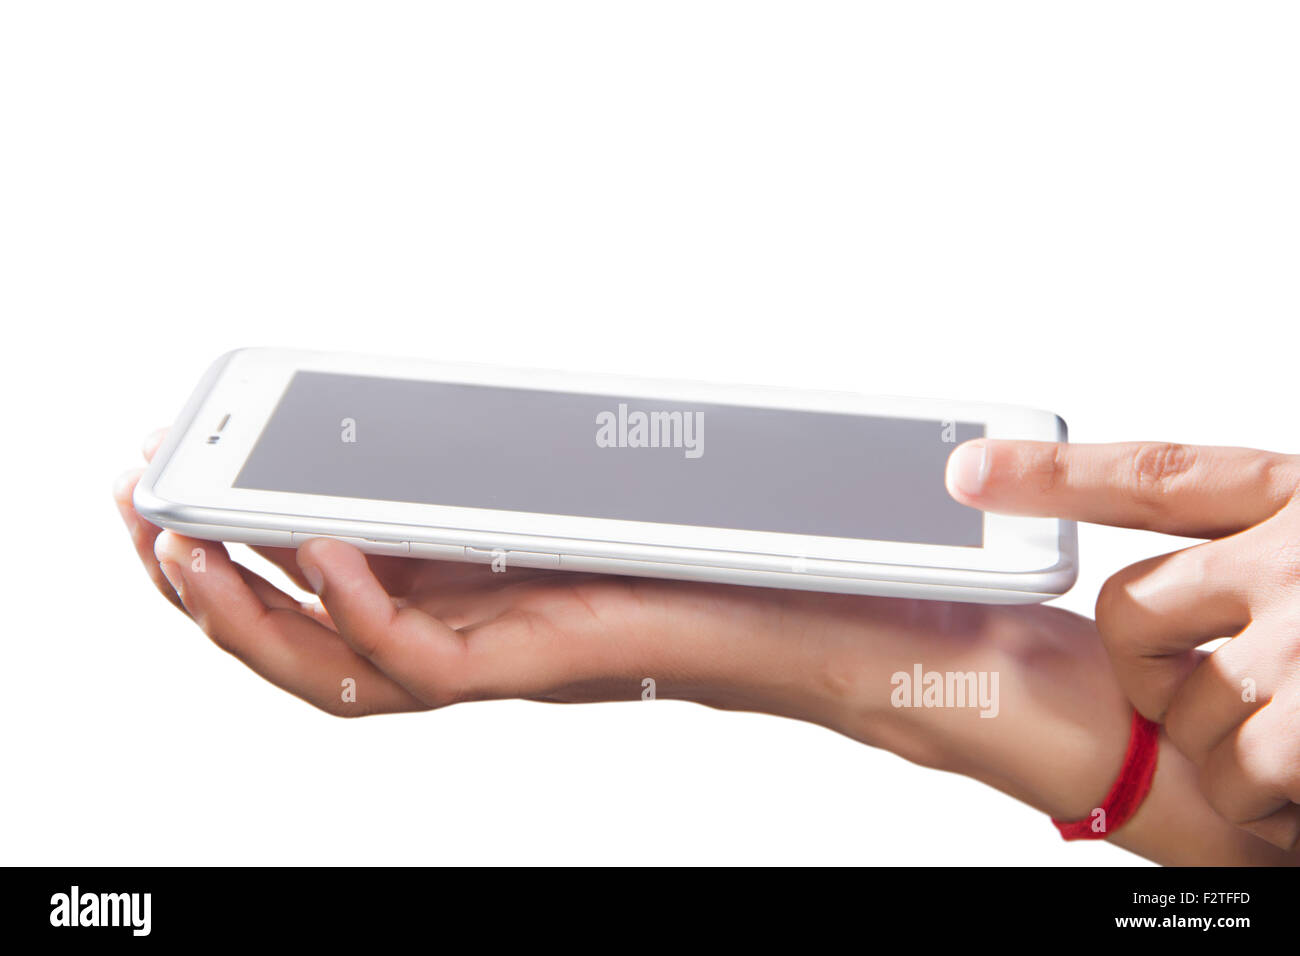 1 Adult Man Digital Tablet Technology - Stock Image